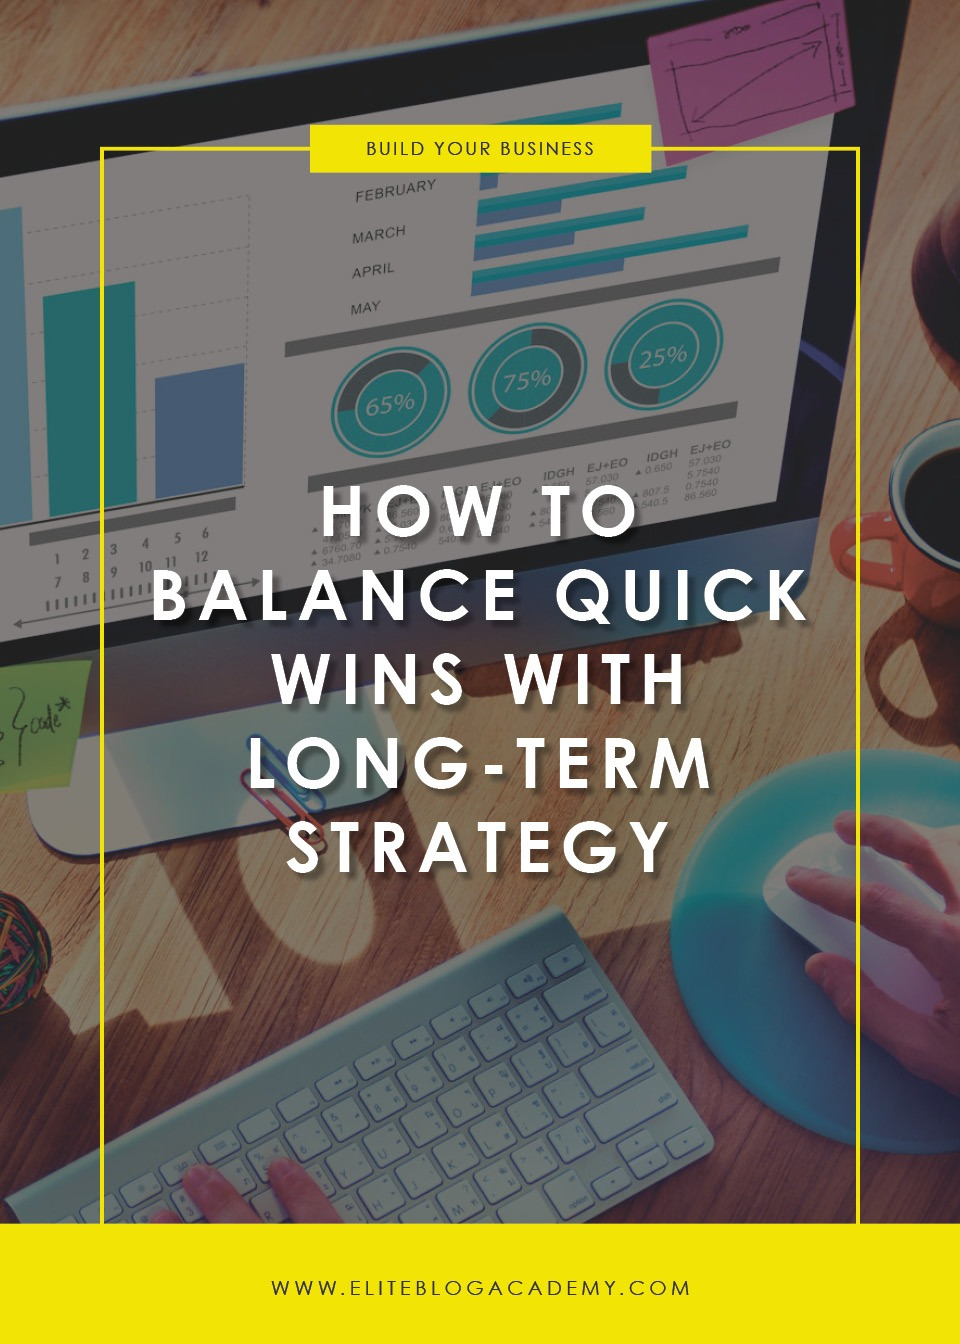 How to Balance Quick Wins with Long Term Strategy | Elite Blog Academy | Start a Blogging Business | How to Make Money Blogging | Create a Profitable Blog | Blogging 101 | How to Start a Blog | Building an Online Business